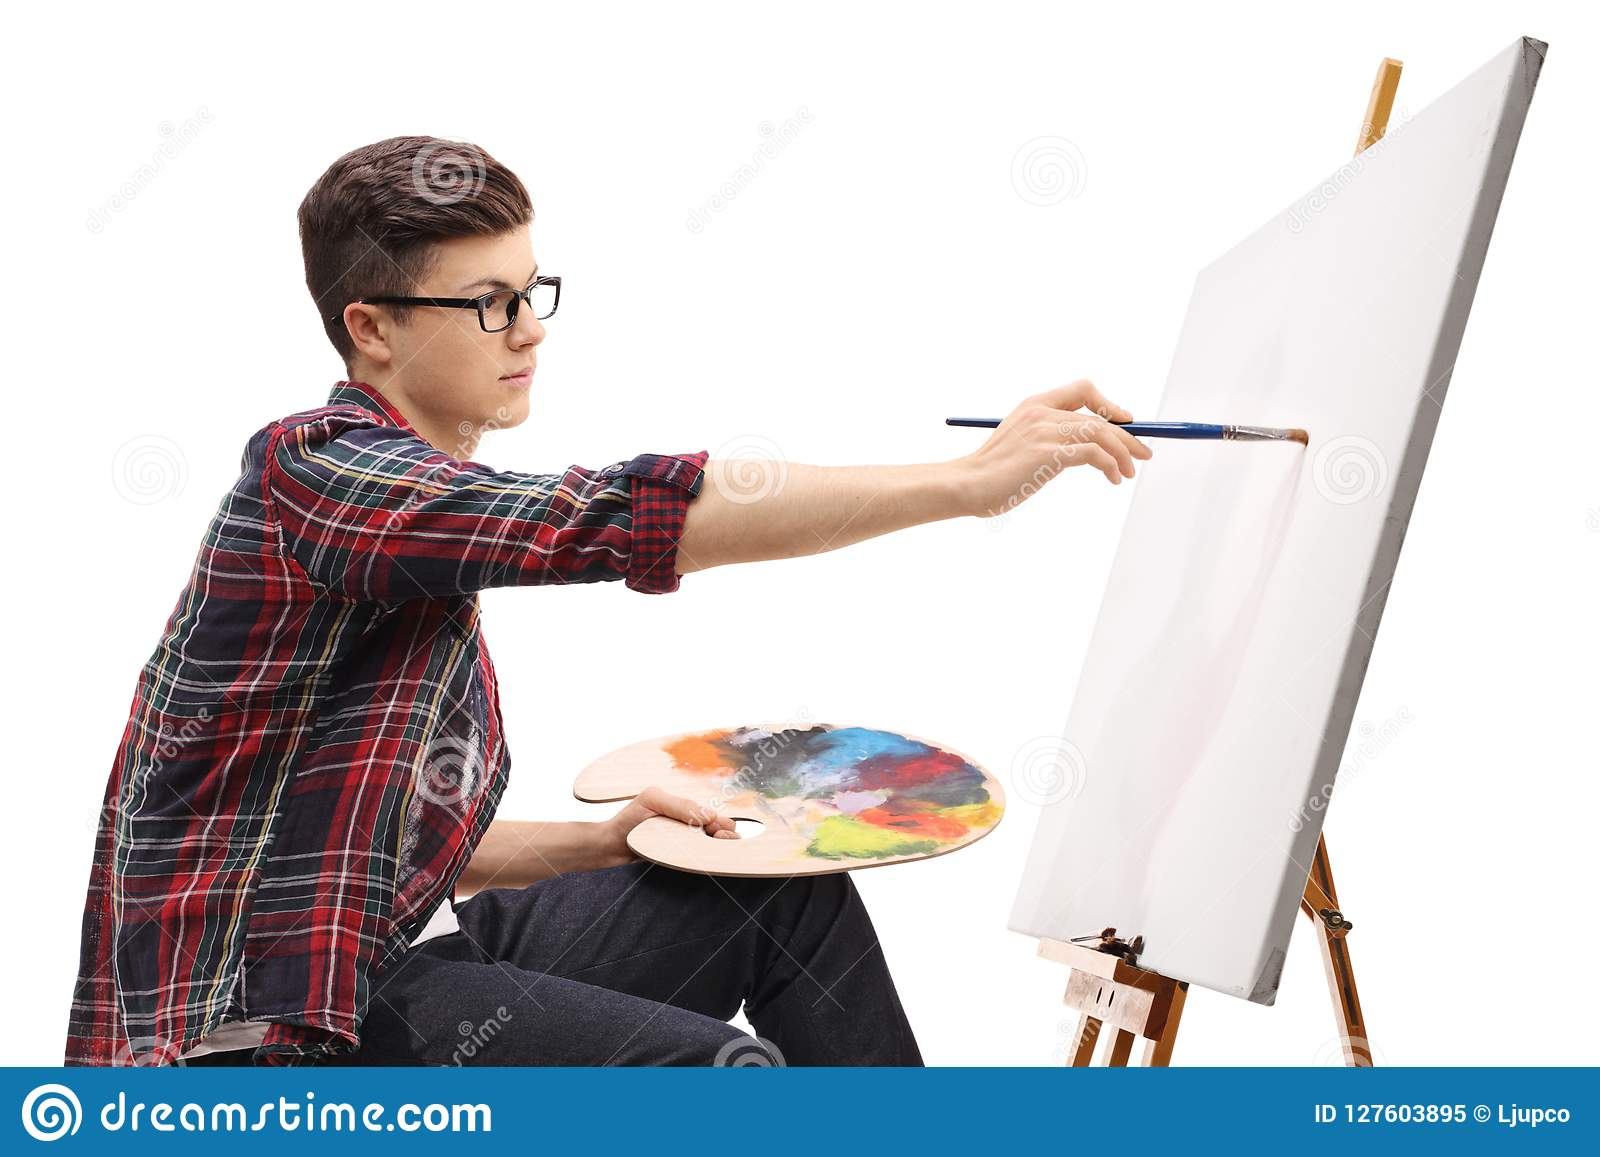 Teenage boy painting on a canvas